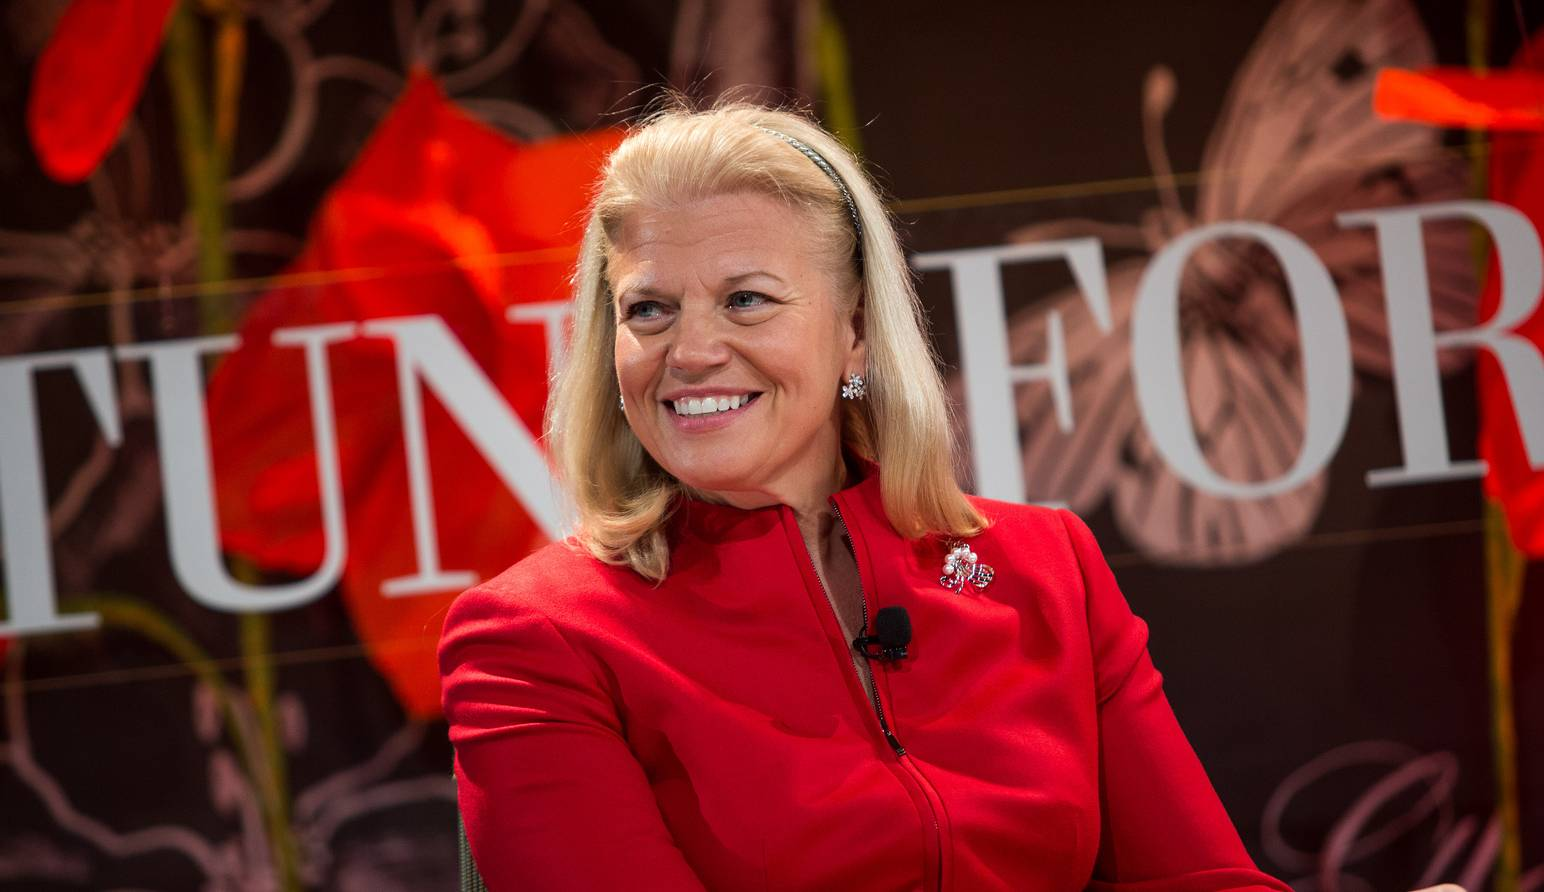 "<h1>Ginni Rometty</h1>   As she nears her one-year anniversary as president and CEO at Big Blue, <a href=""http://money.cnn.com/quote/quote.html?symb=IBM&source=story_quote_link"" title="""">IBM's</a> Ginni Rometty has another title to cheer about: she was made chairman in October. Her future plans for the tech giant? The 31-year company veteran favors what she refers to as strategic beliefs over strategic planning. ""Clients say, 'What's your strategy?' And I say, 'Ask me what I believe first.' That's a far more enduring answer."""